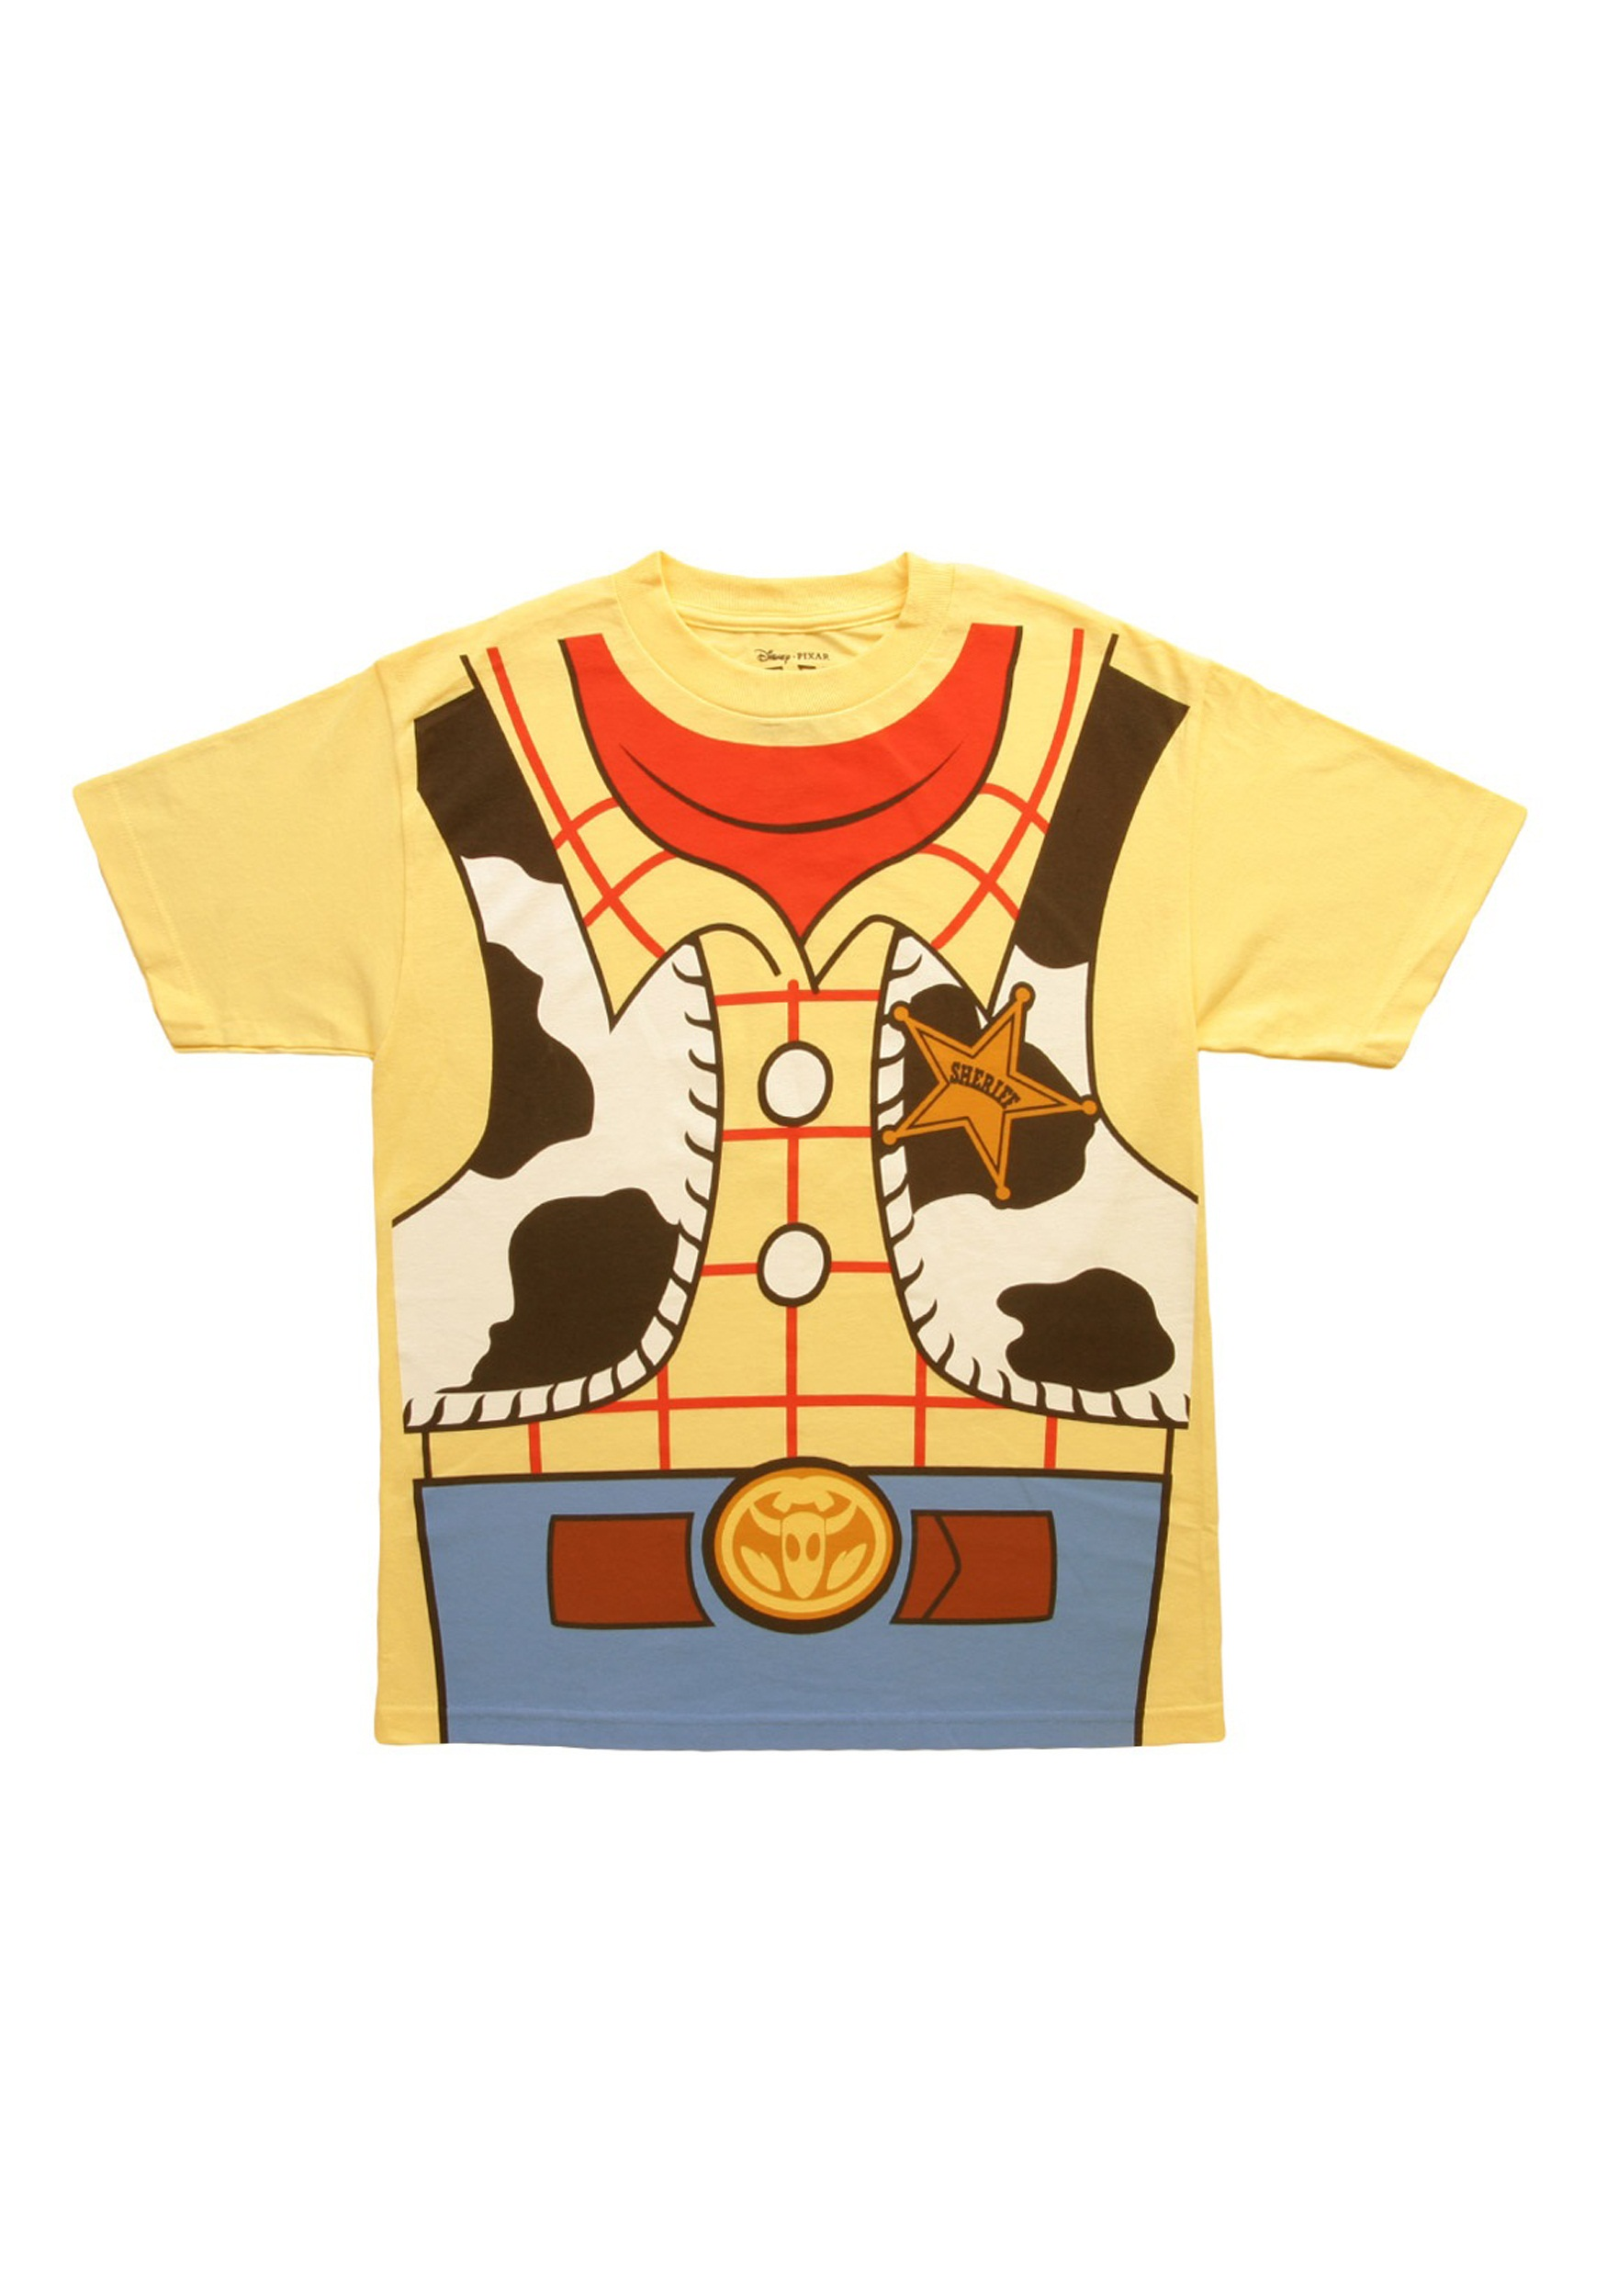 Woody+Toy+Story+Costume Am Woody Toy Story Costume T-Shirt